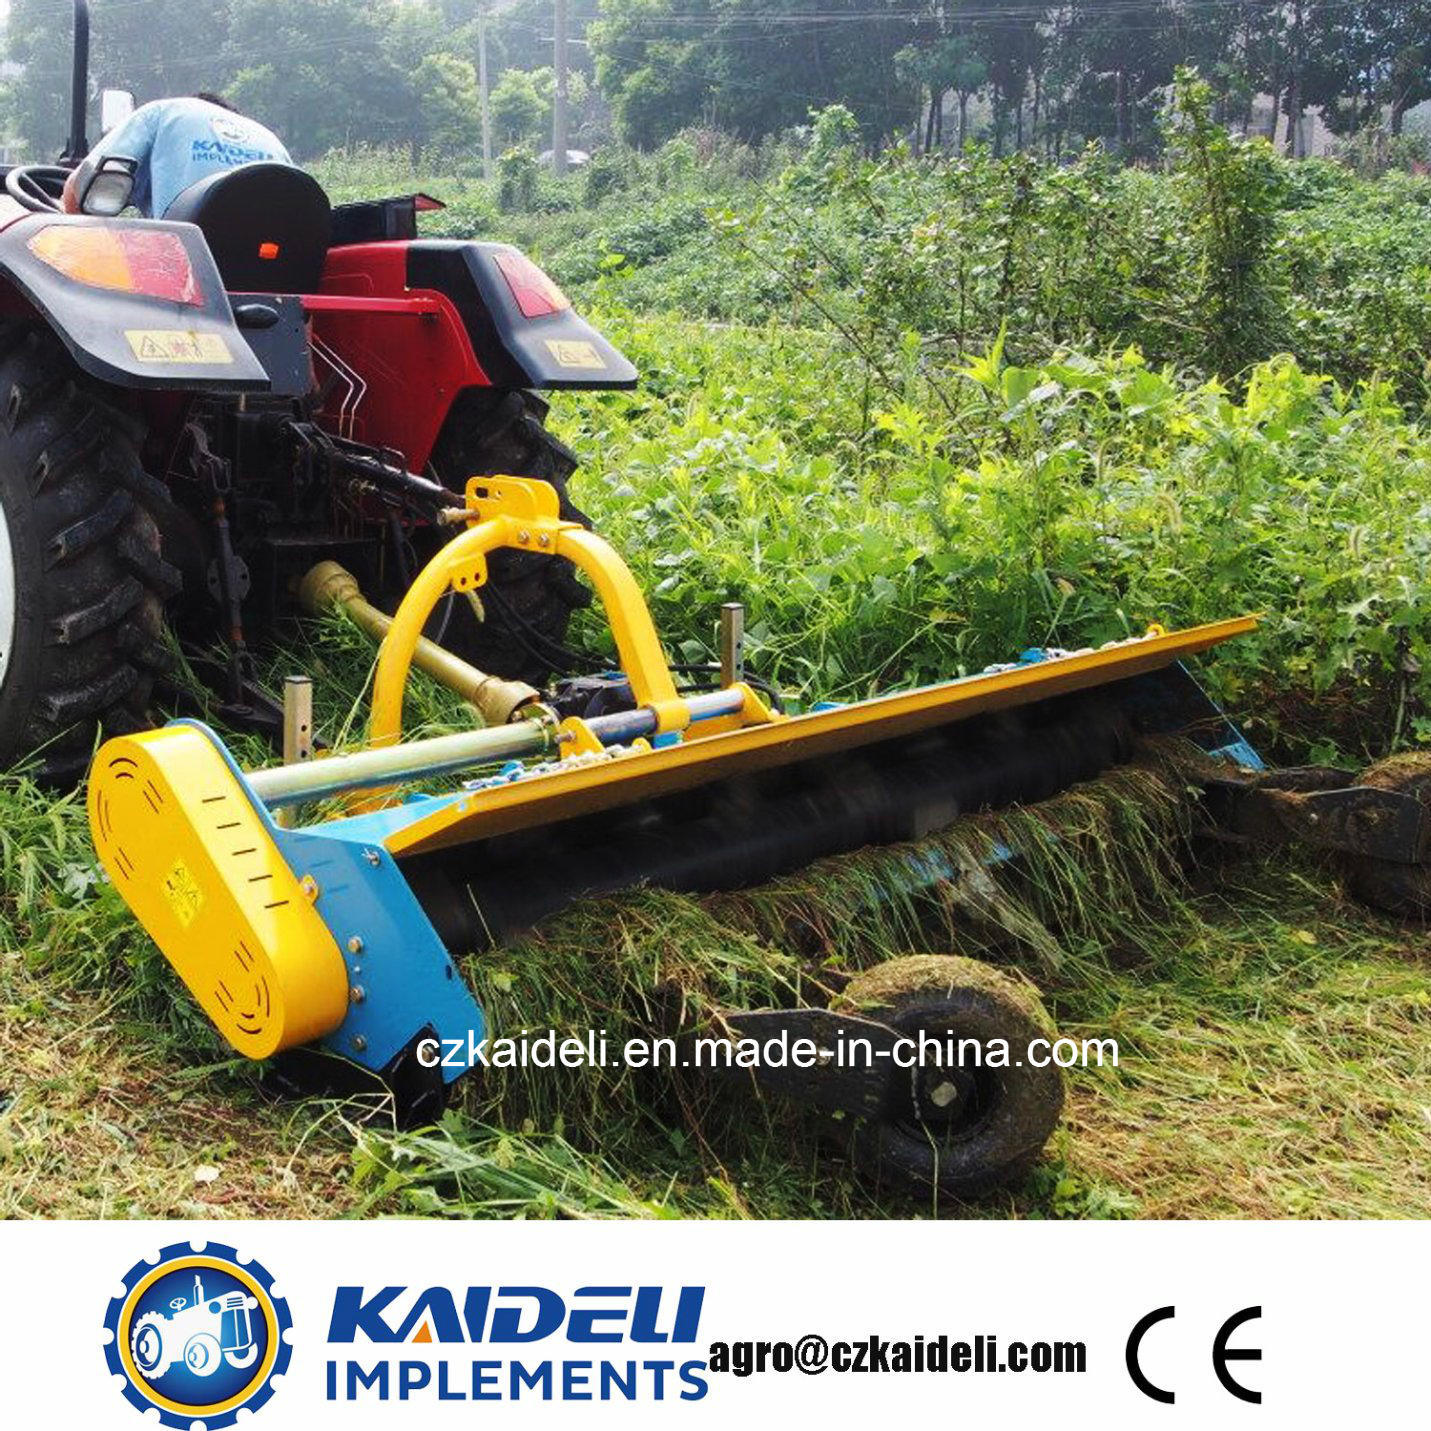 [Hot Item] with Hammer Flails Heavy Duty Flail Mower (KDK240)